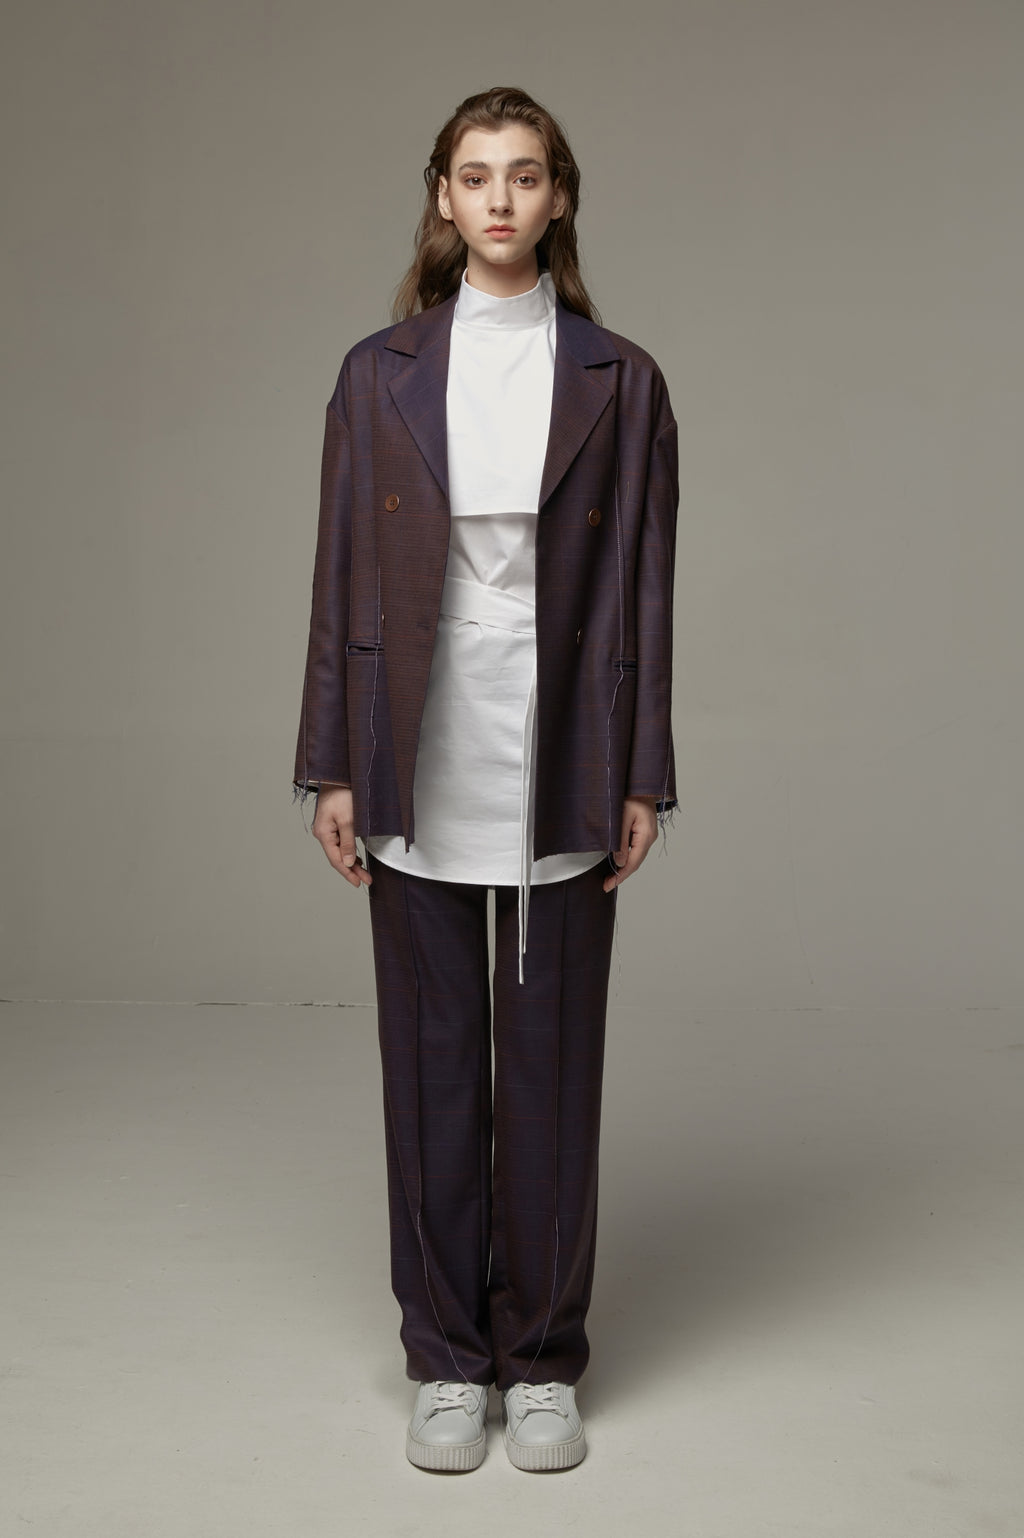 Jason Liu mineral purple plaid trousers